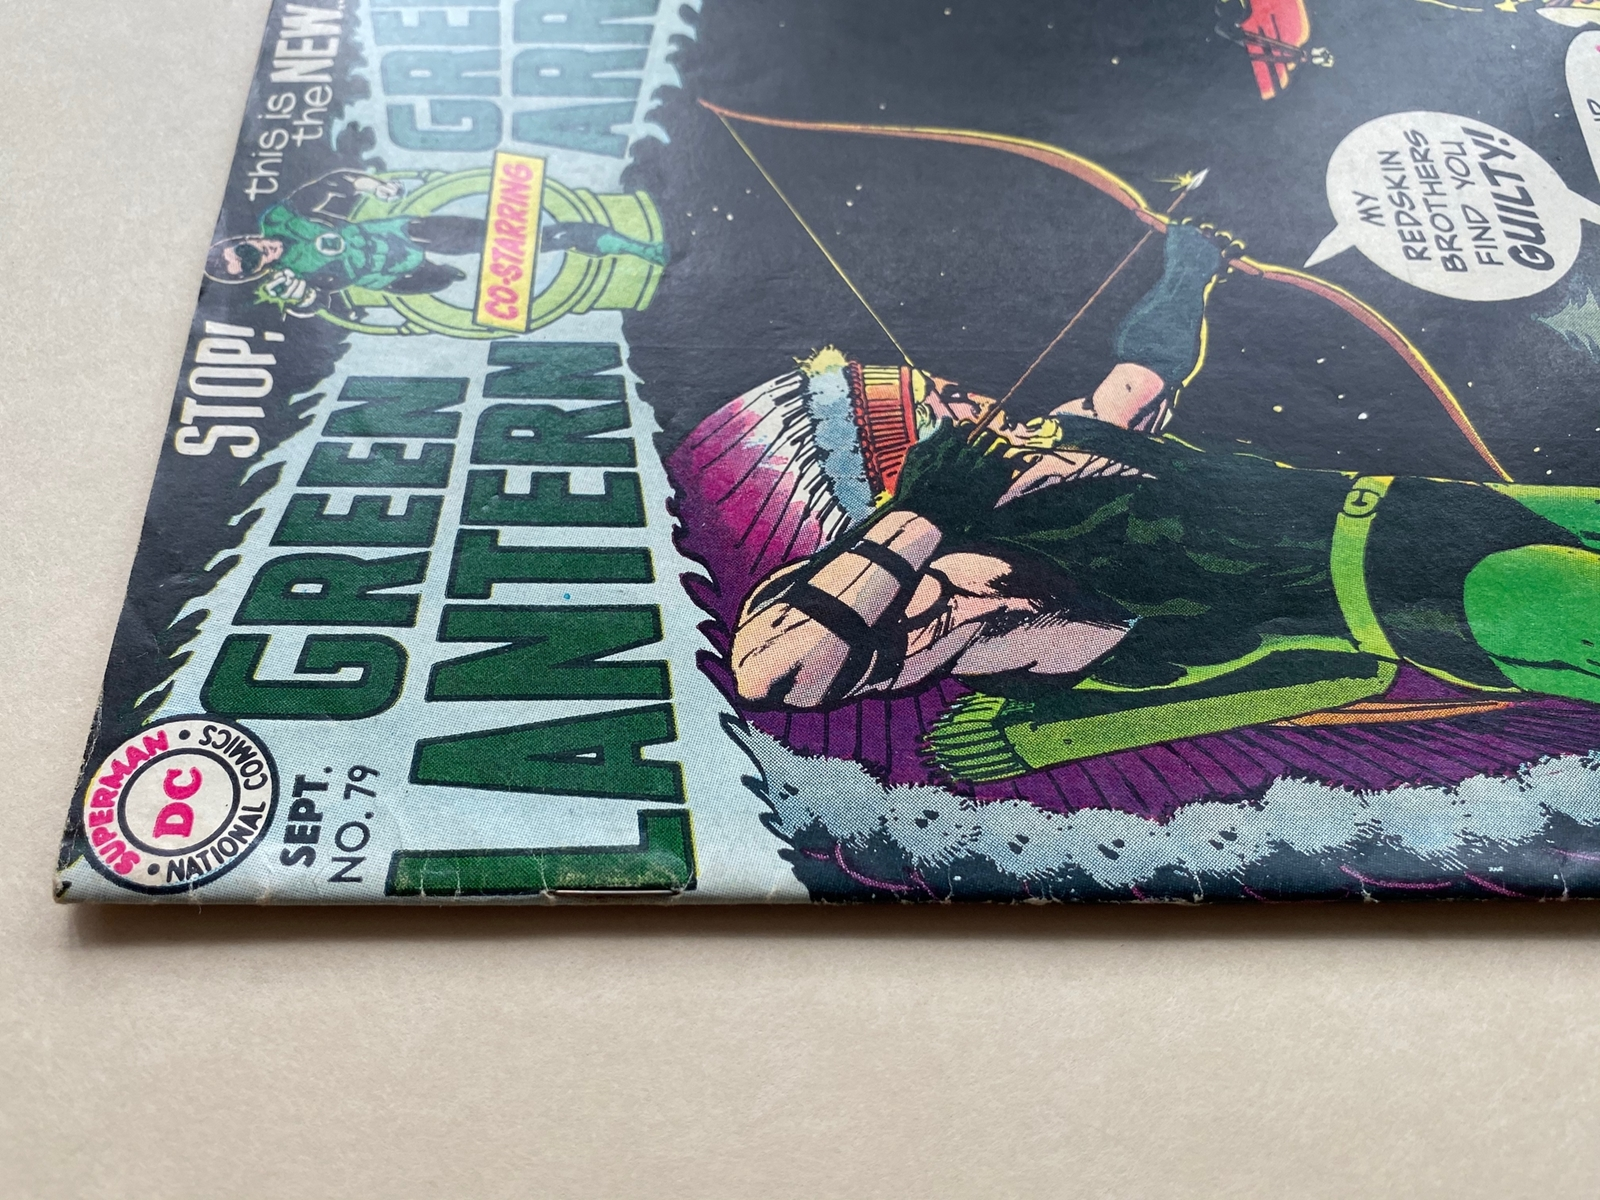 Lot 2119 - GREEN LANTERN #79 (1970 - DC) VFN (Cents Copy/Pence Stamp) - Black Canary appearance - Neal Adams